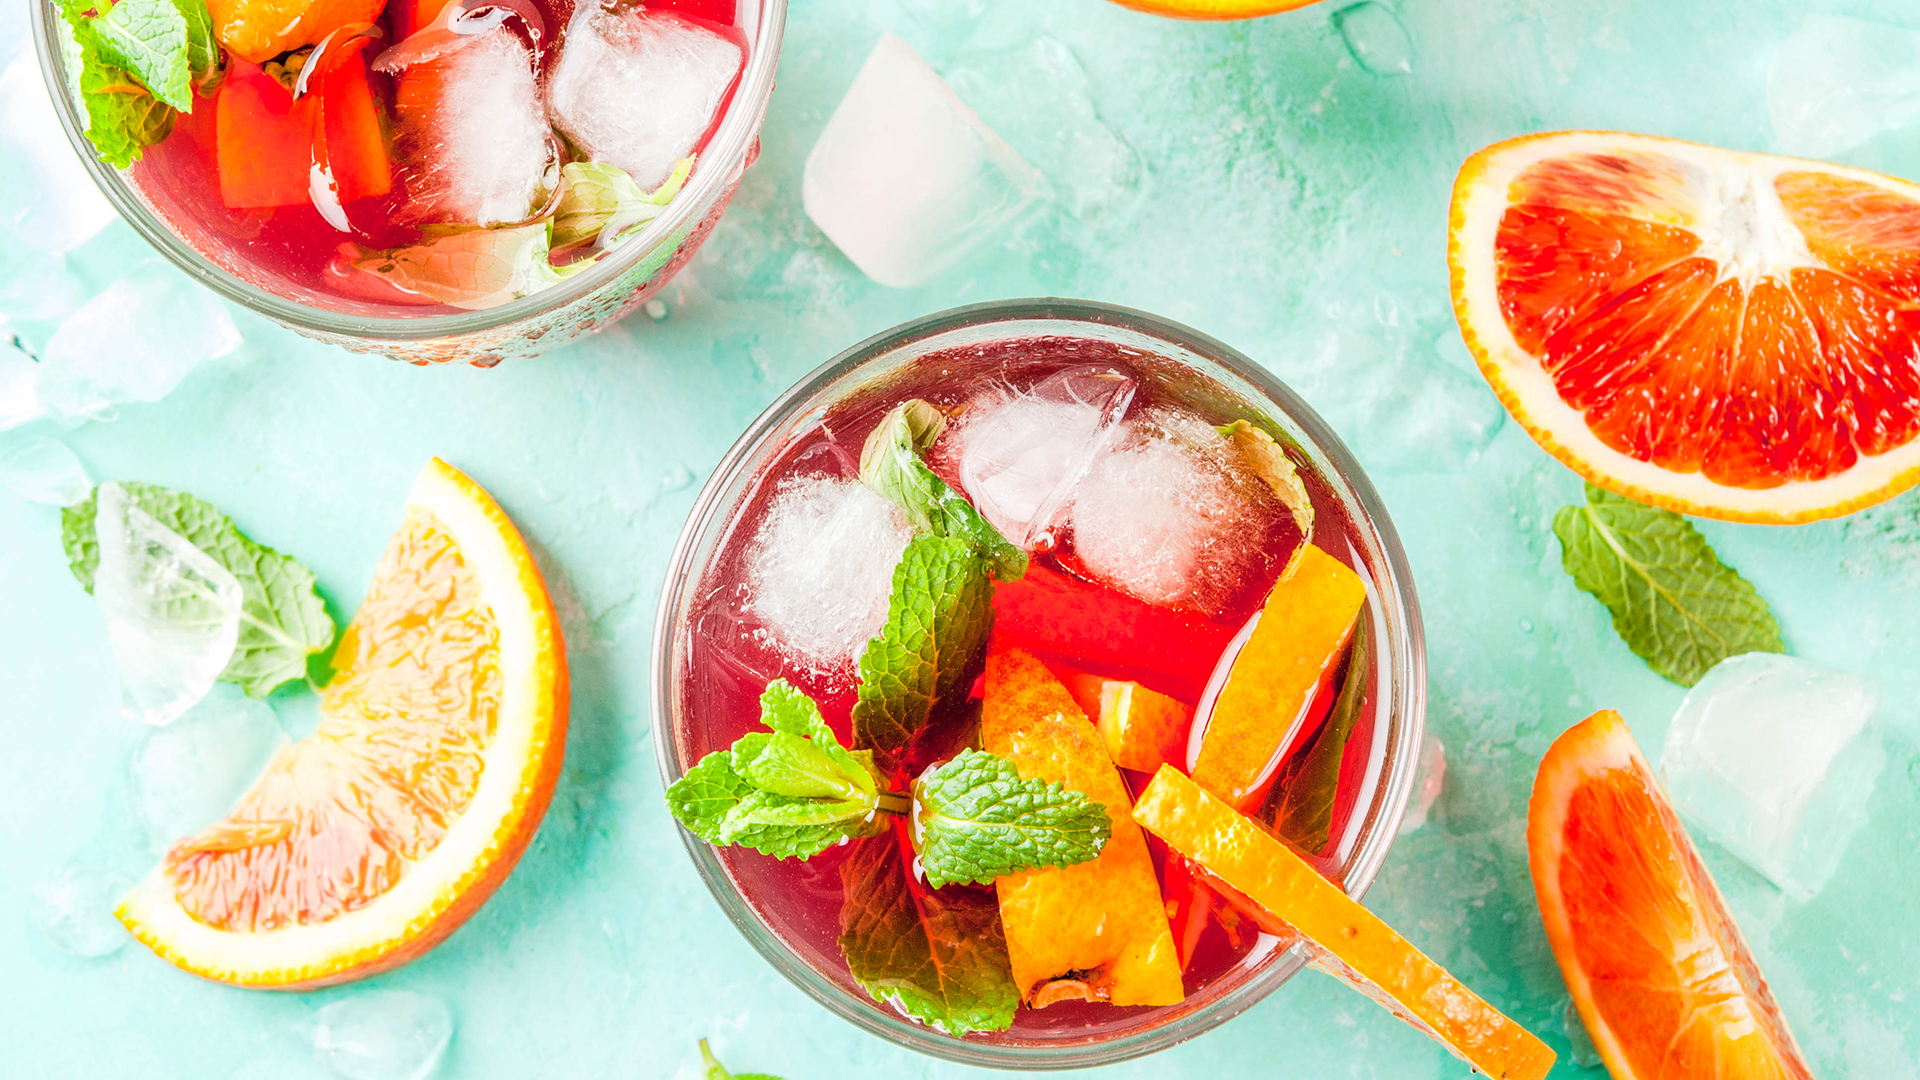 Giada De Laurentiis' 3-Ingredient Blood Orange Shandy Is Our Official Summer Cocktail